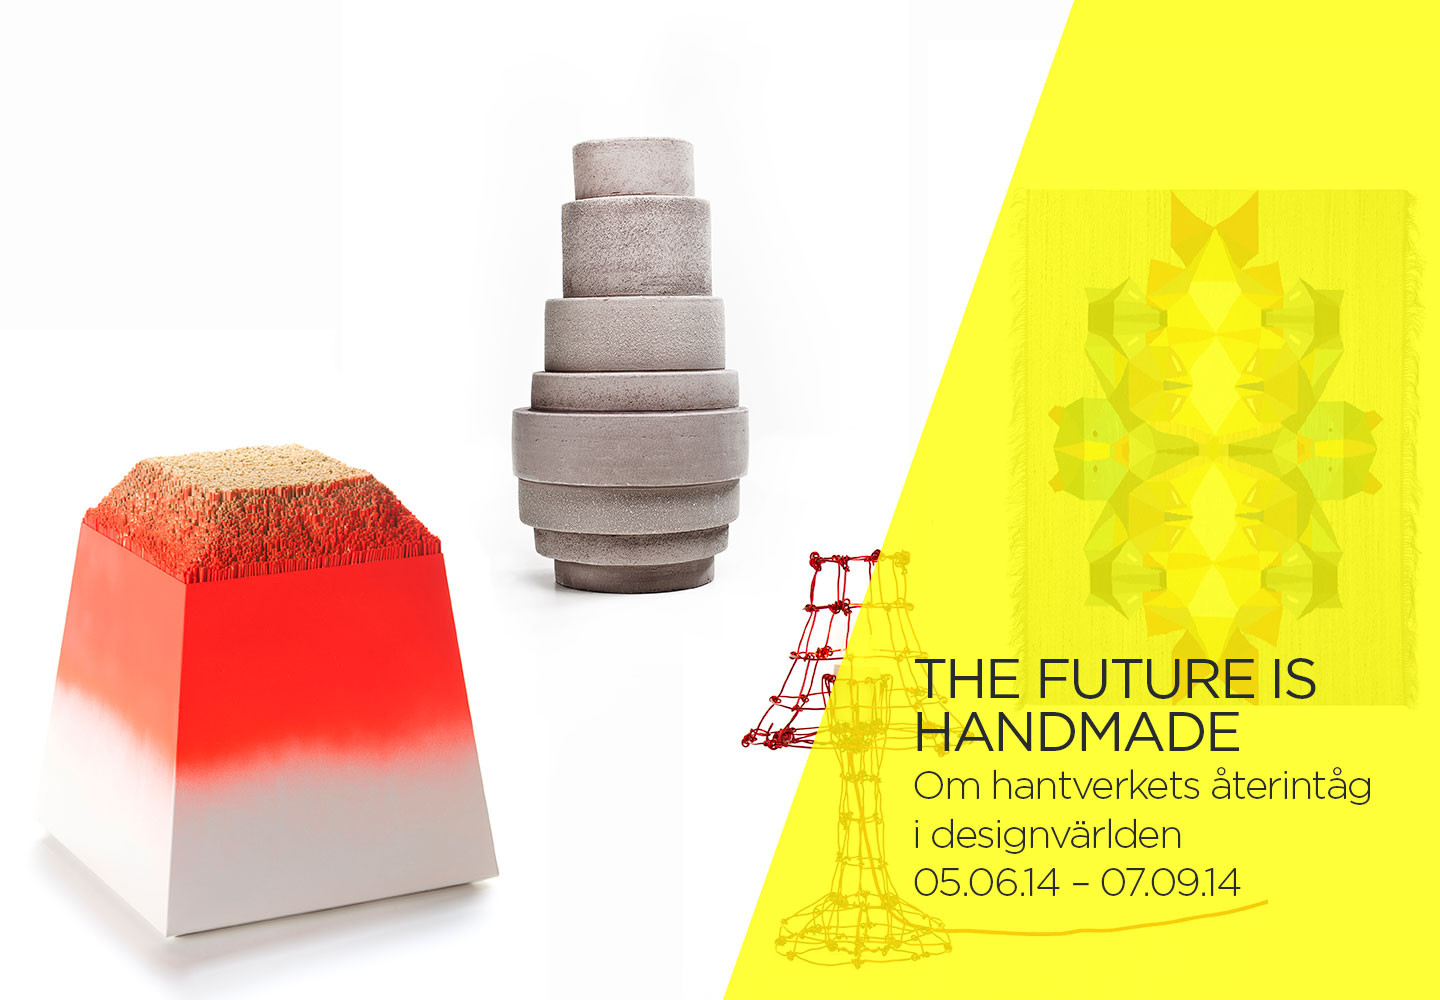 The Future is Handmade